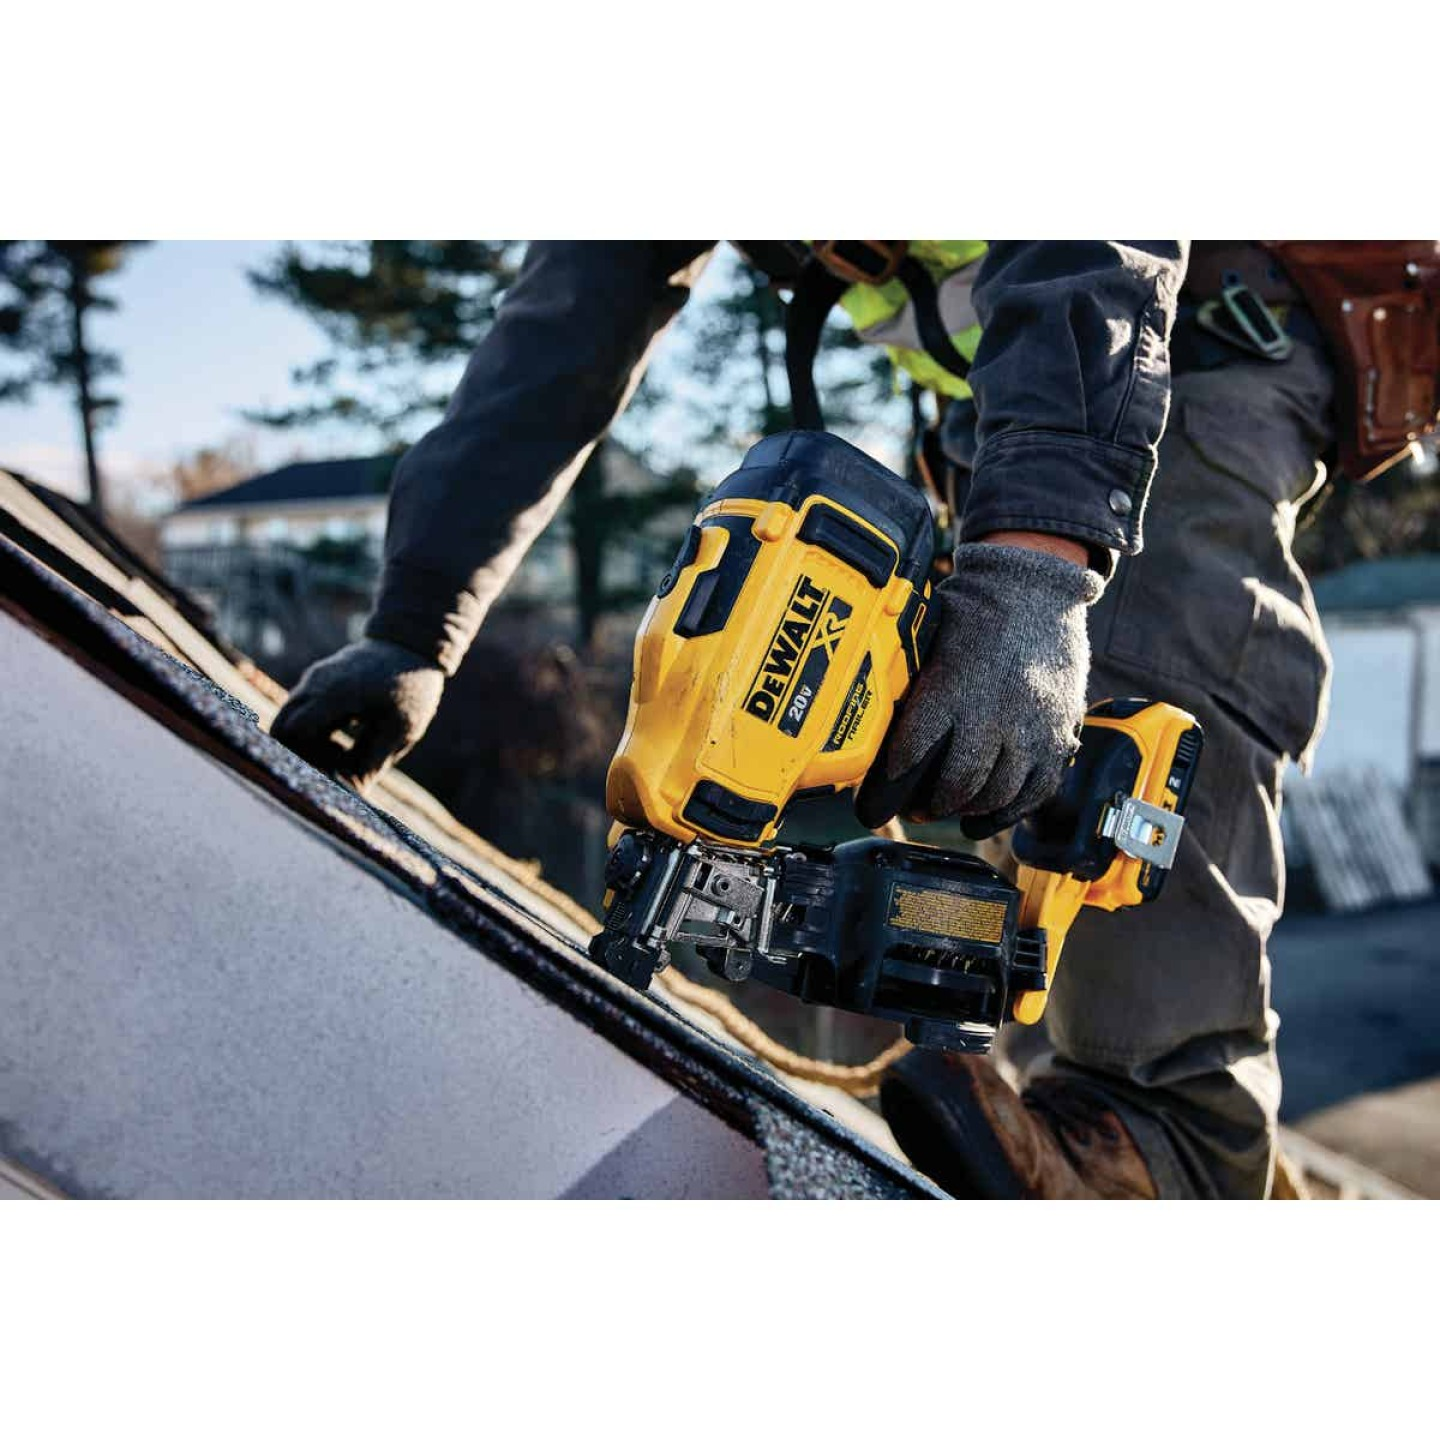 DeWalt 20 Volt MAX Lithium-Ion Brushless 15 Degree 1-3/4 In. Coil Cordless Roofing Nailer Kit Image 2